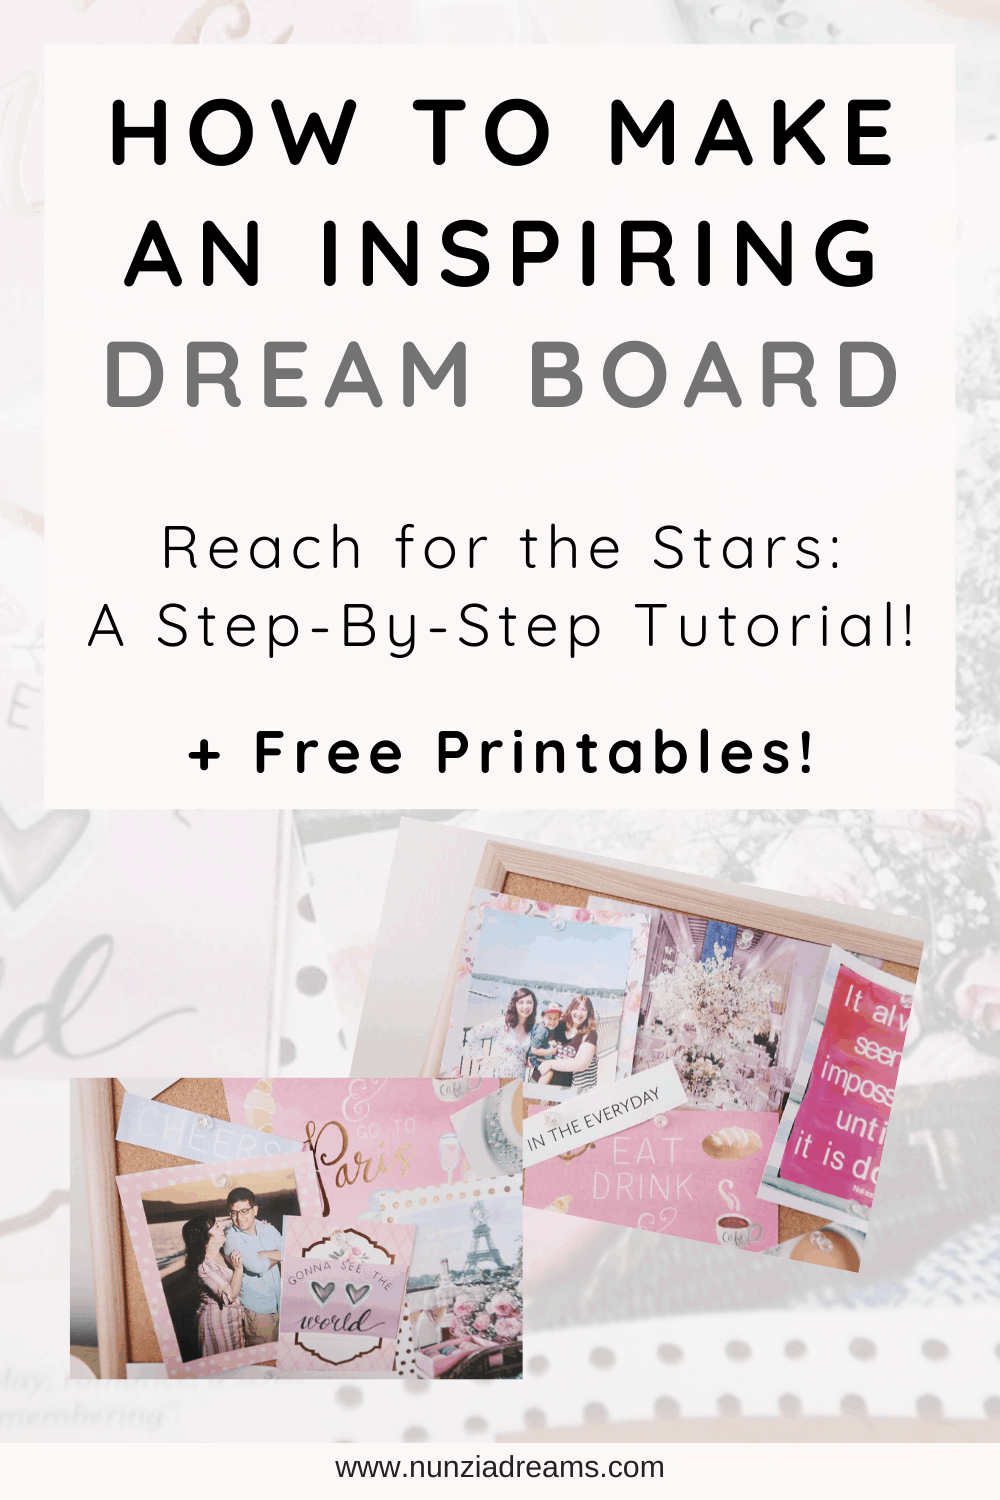 How to Make an Inspiring Dream Board Tutorials + Printables